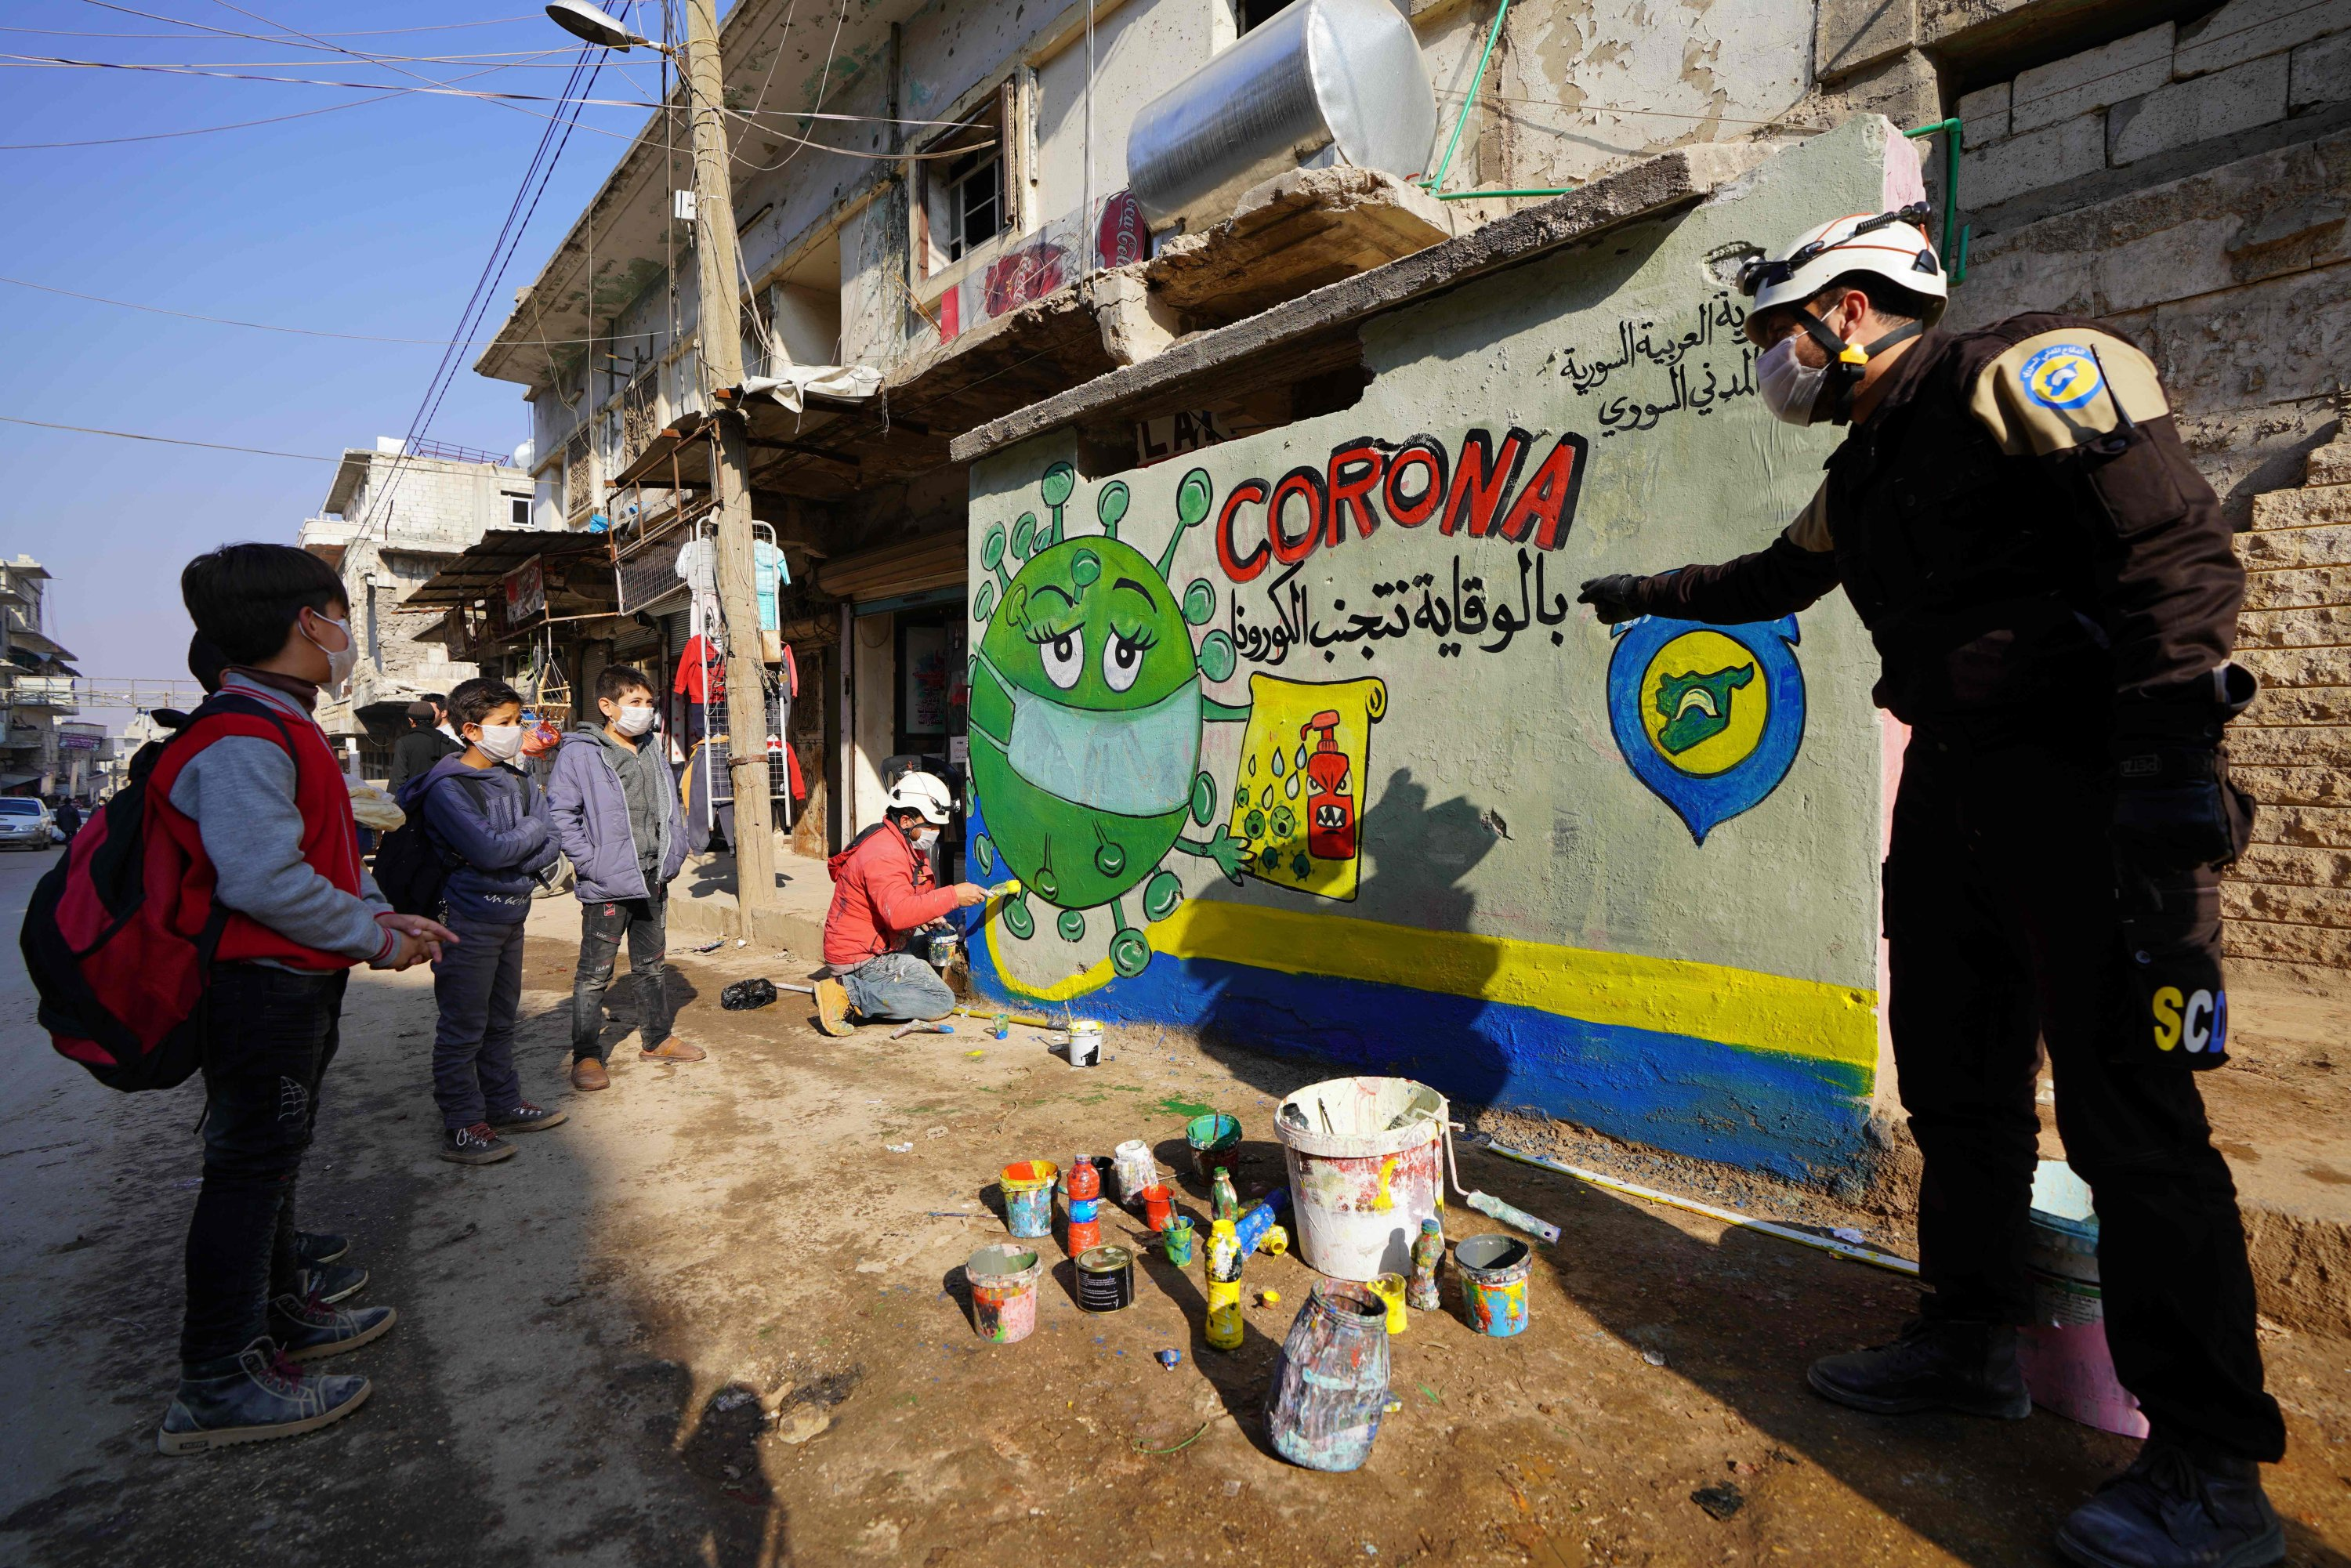 A member of the Syrian Civil Defense group known as the White Helmets instructs school children about the coronavirus during an awareness campaign organized to inform children about the COVID-19 pandemic and protection methods against the contagious virus, in the town of Binnish in northwestern Idlib province, Syria, Dec. 6, 2020. (AFP Photo)